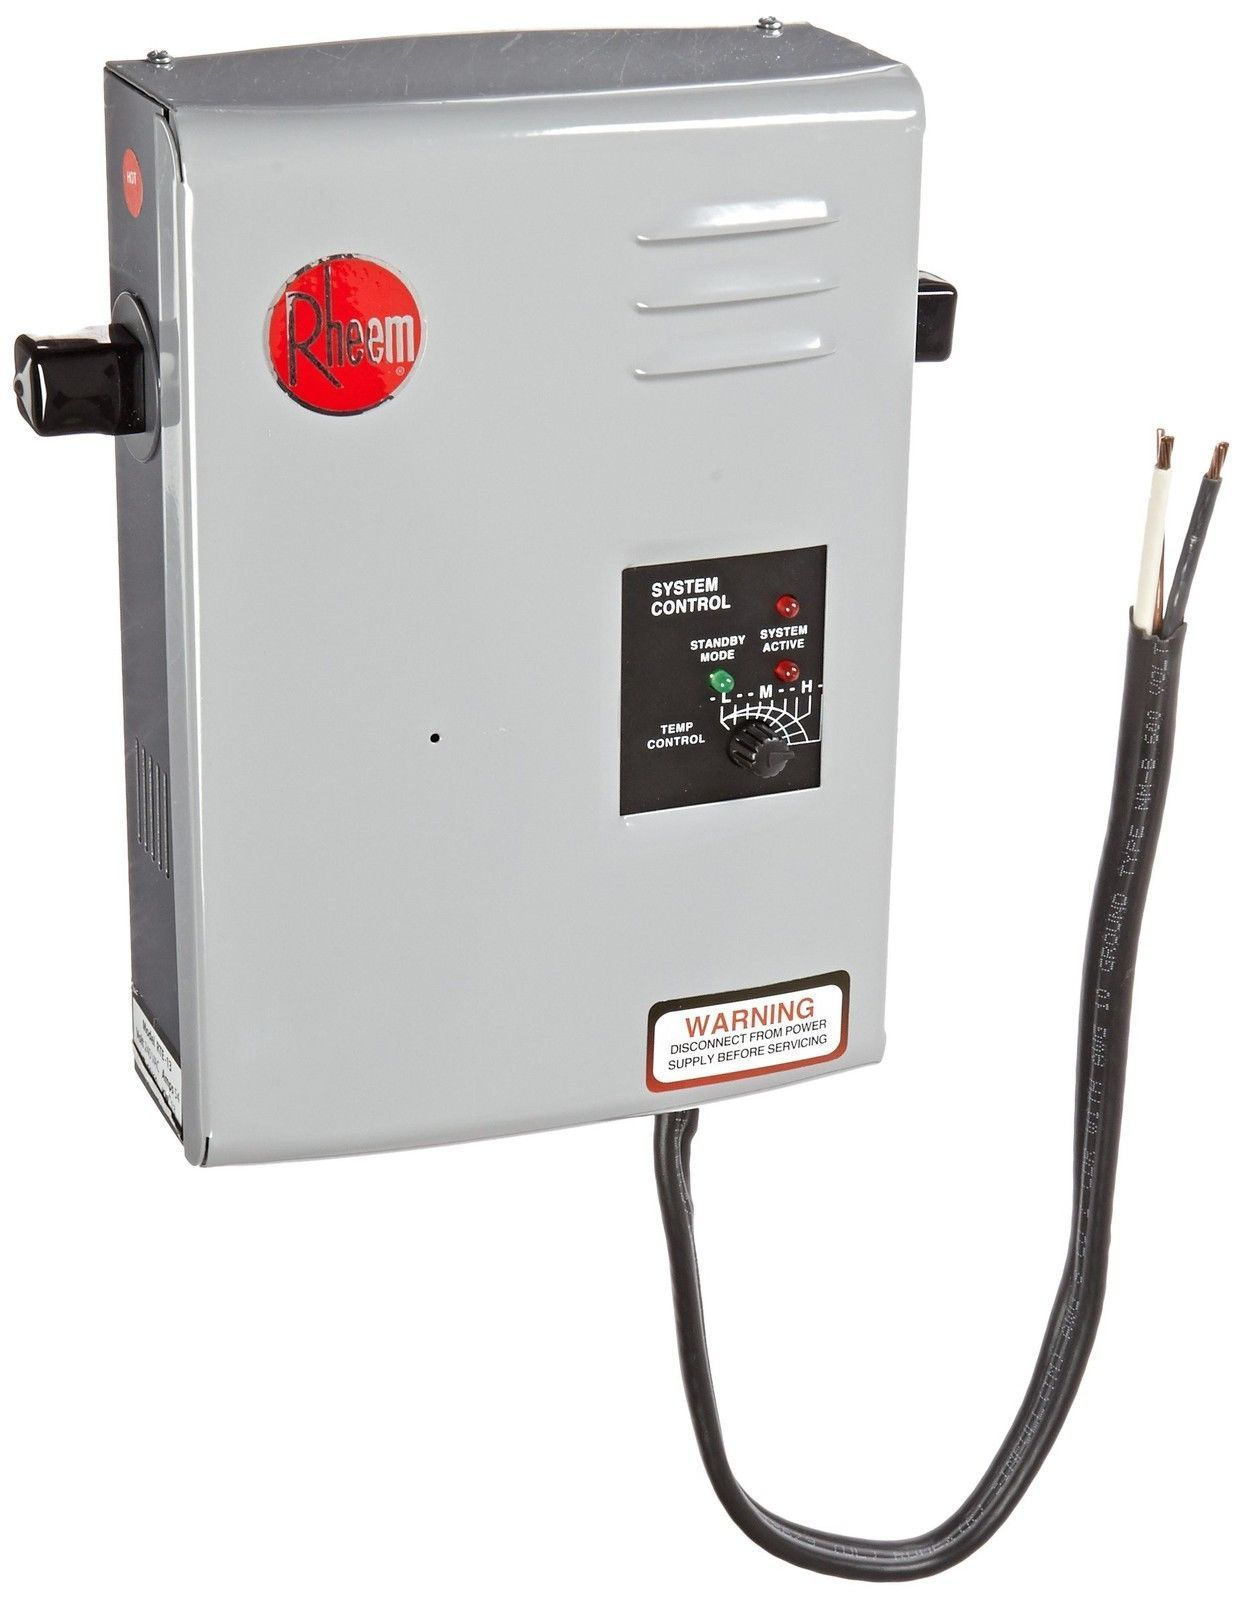 Rheem Rte 13 Electric Tankless Water Heater 4 Gpm Product Details